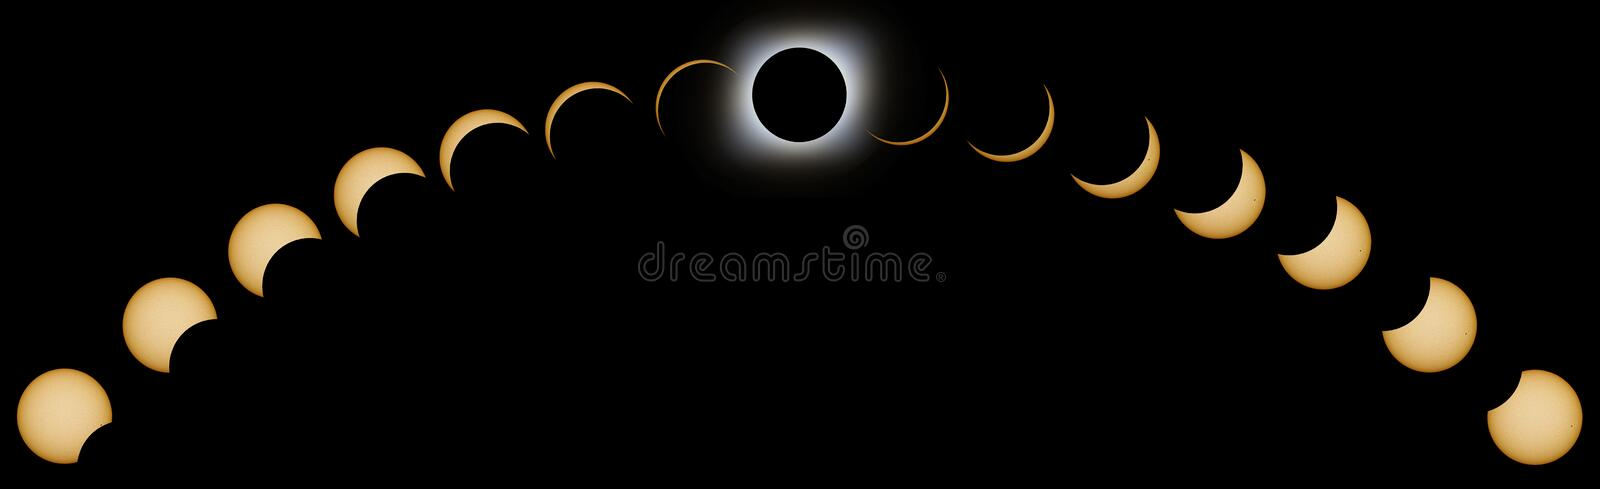 Fases totales del eclipse solar Eclipse solar compuesto libre illustration